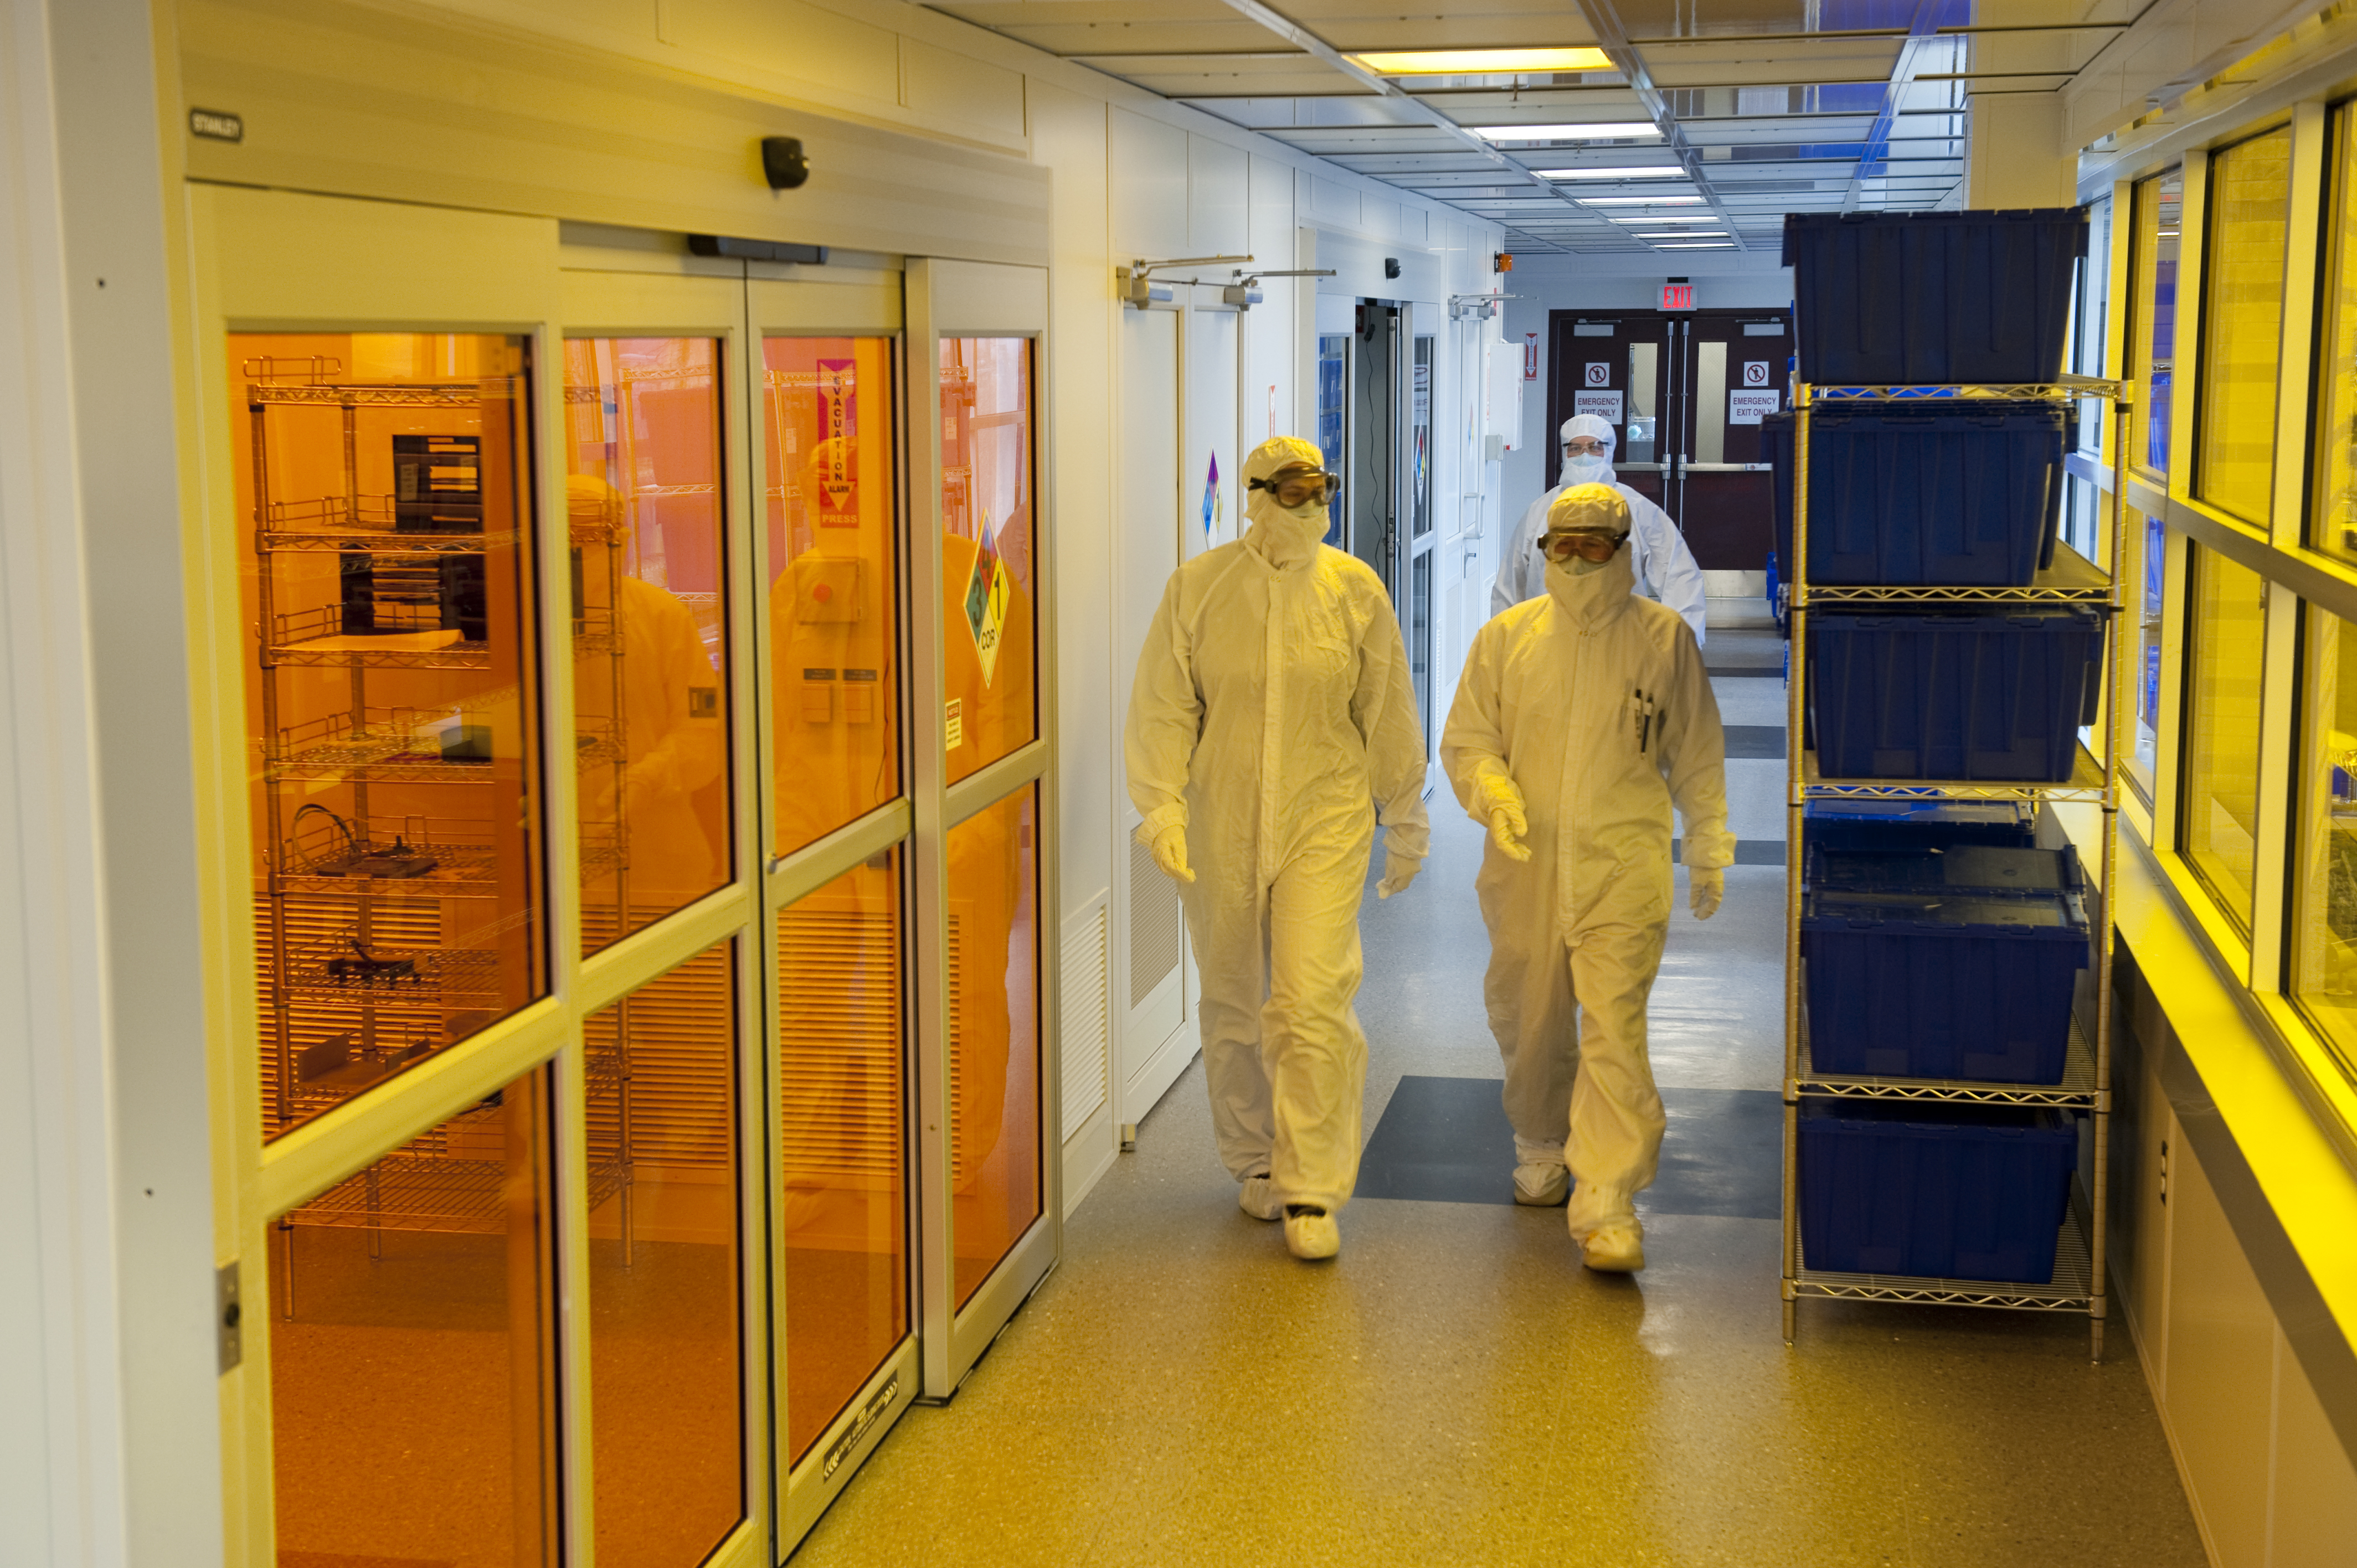 The Cleanroom Hallway